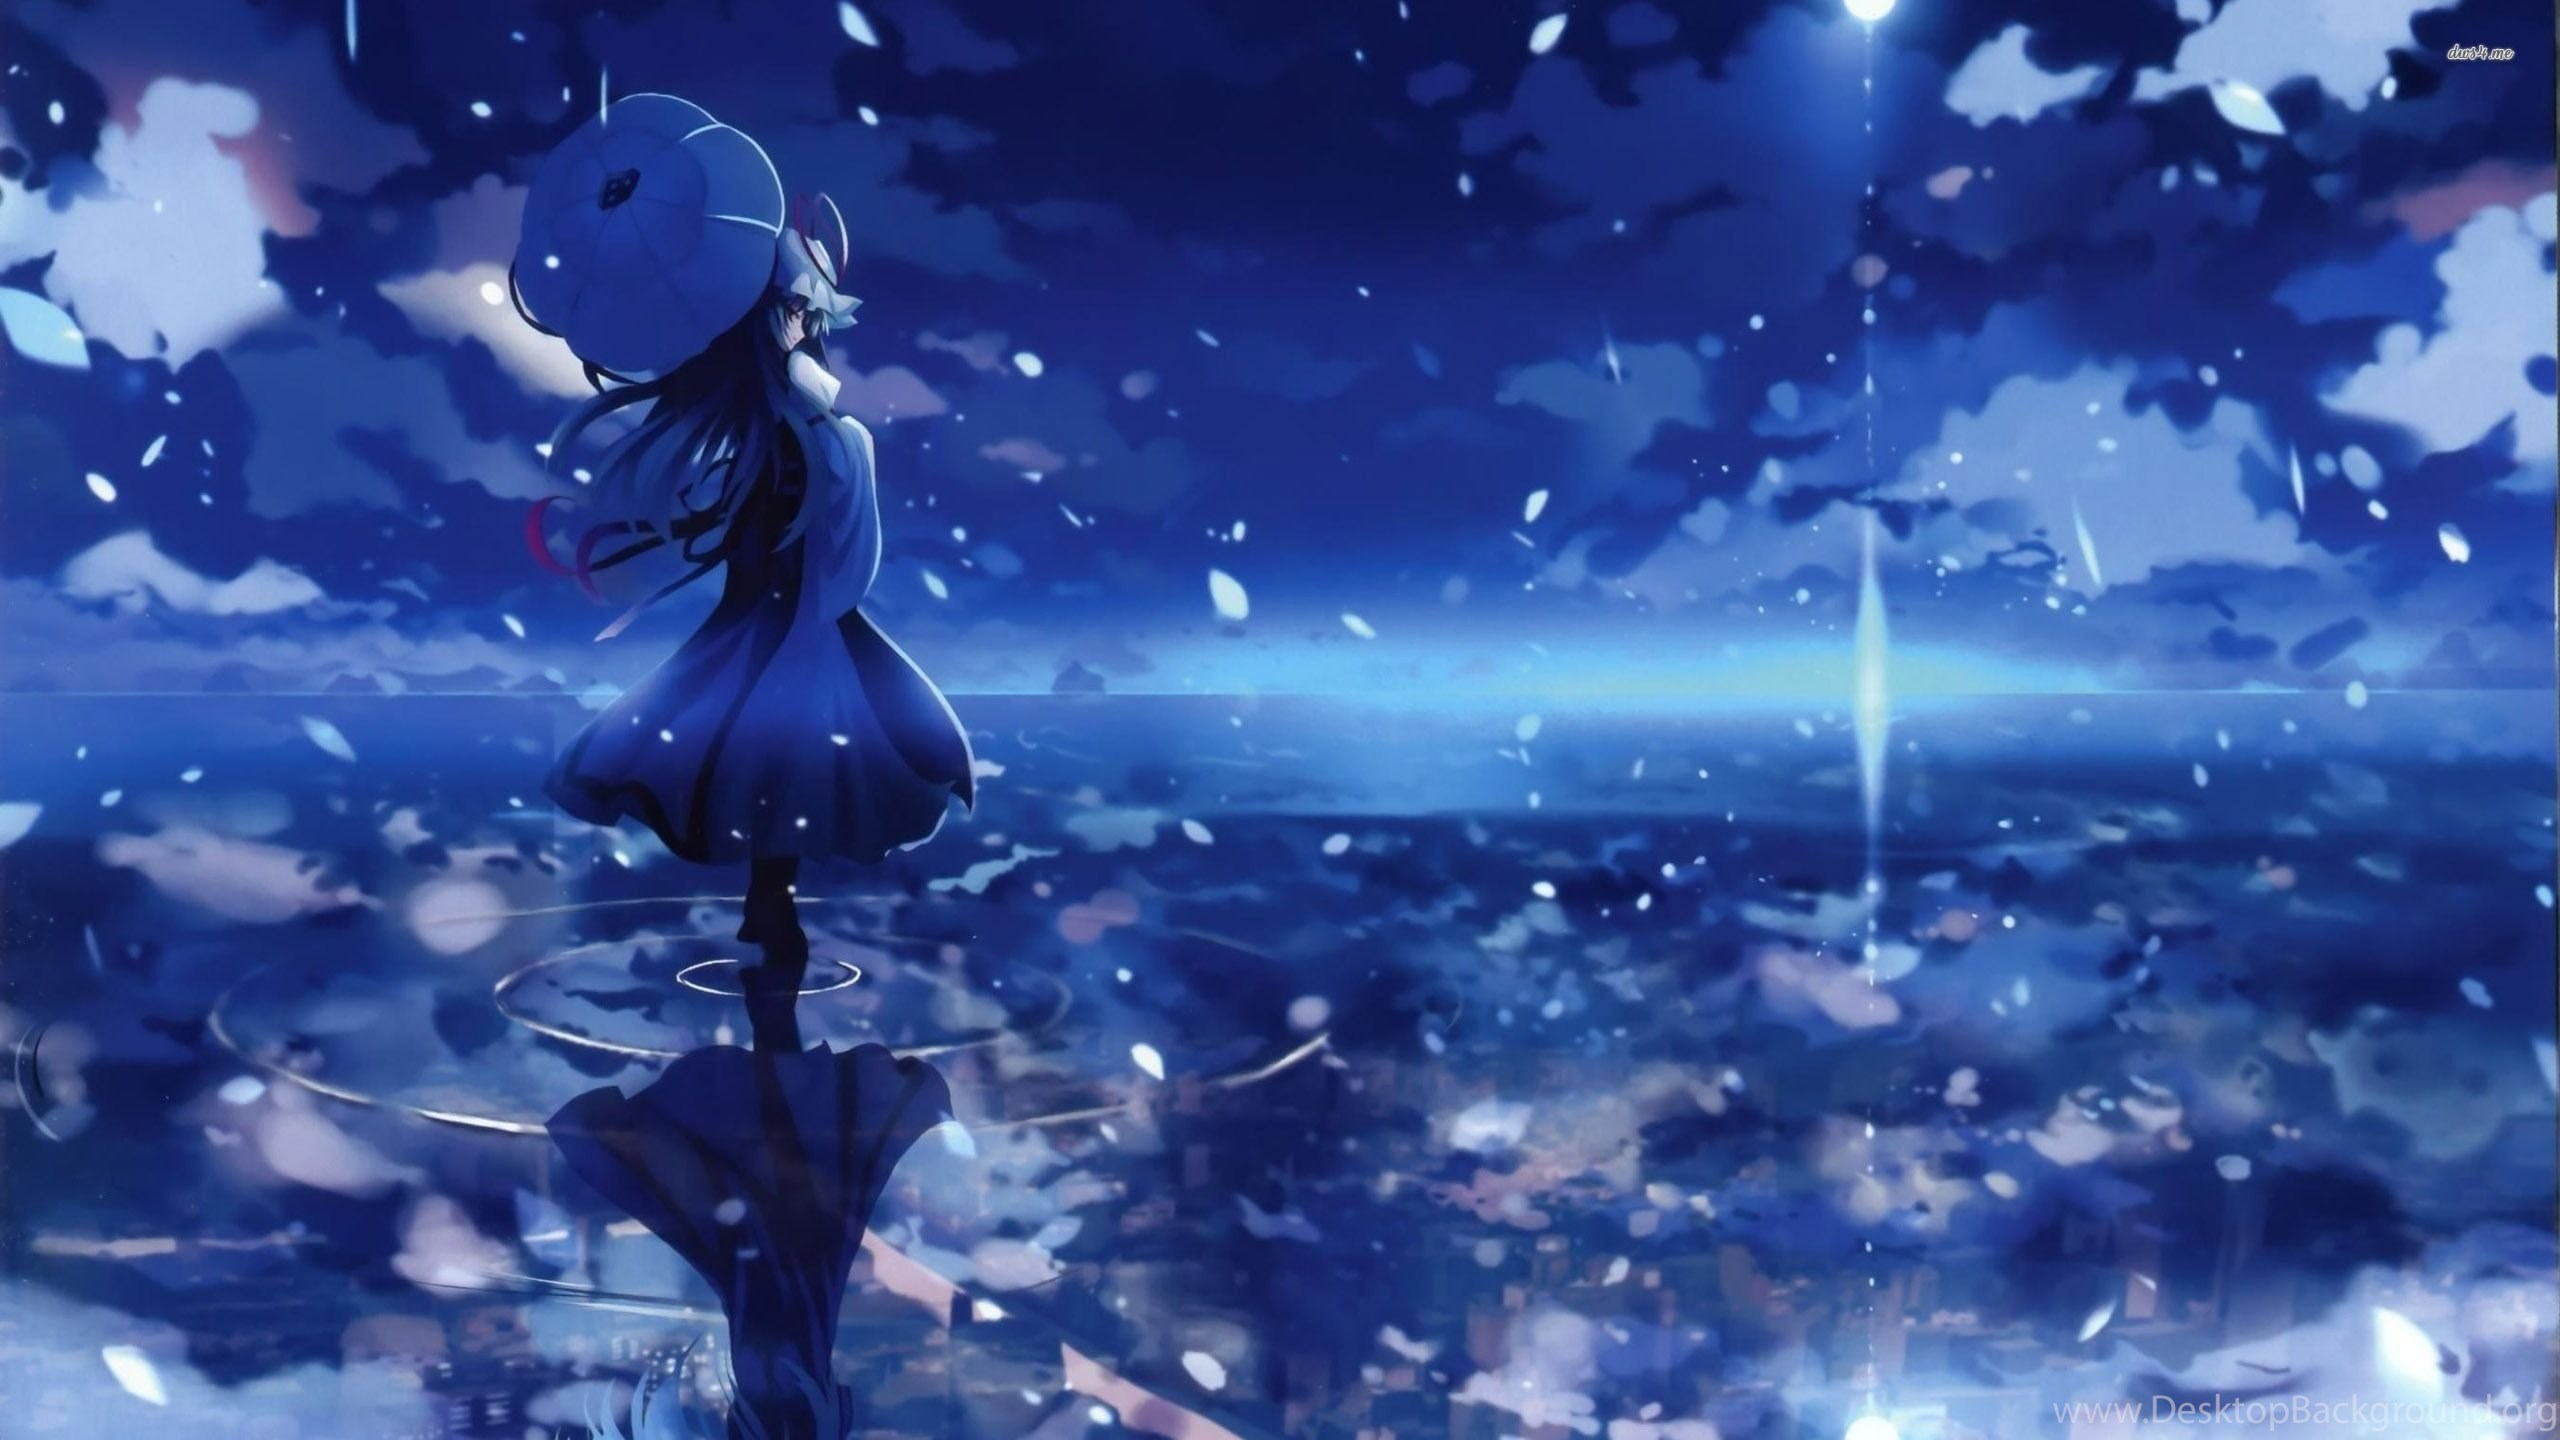 Touhou Project Wallpapers Anime Wallpapers Desktop Background